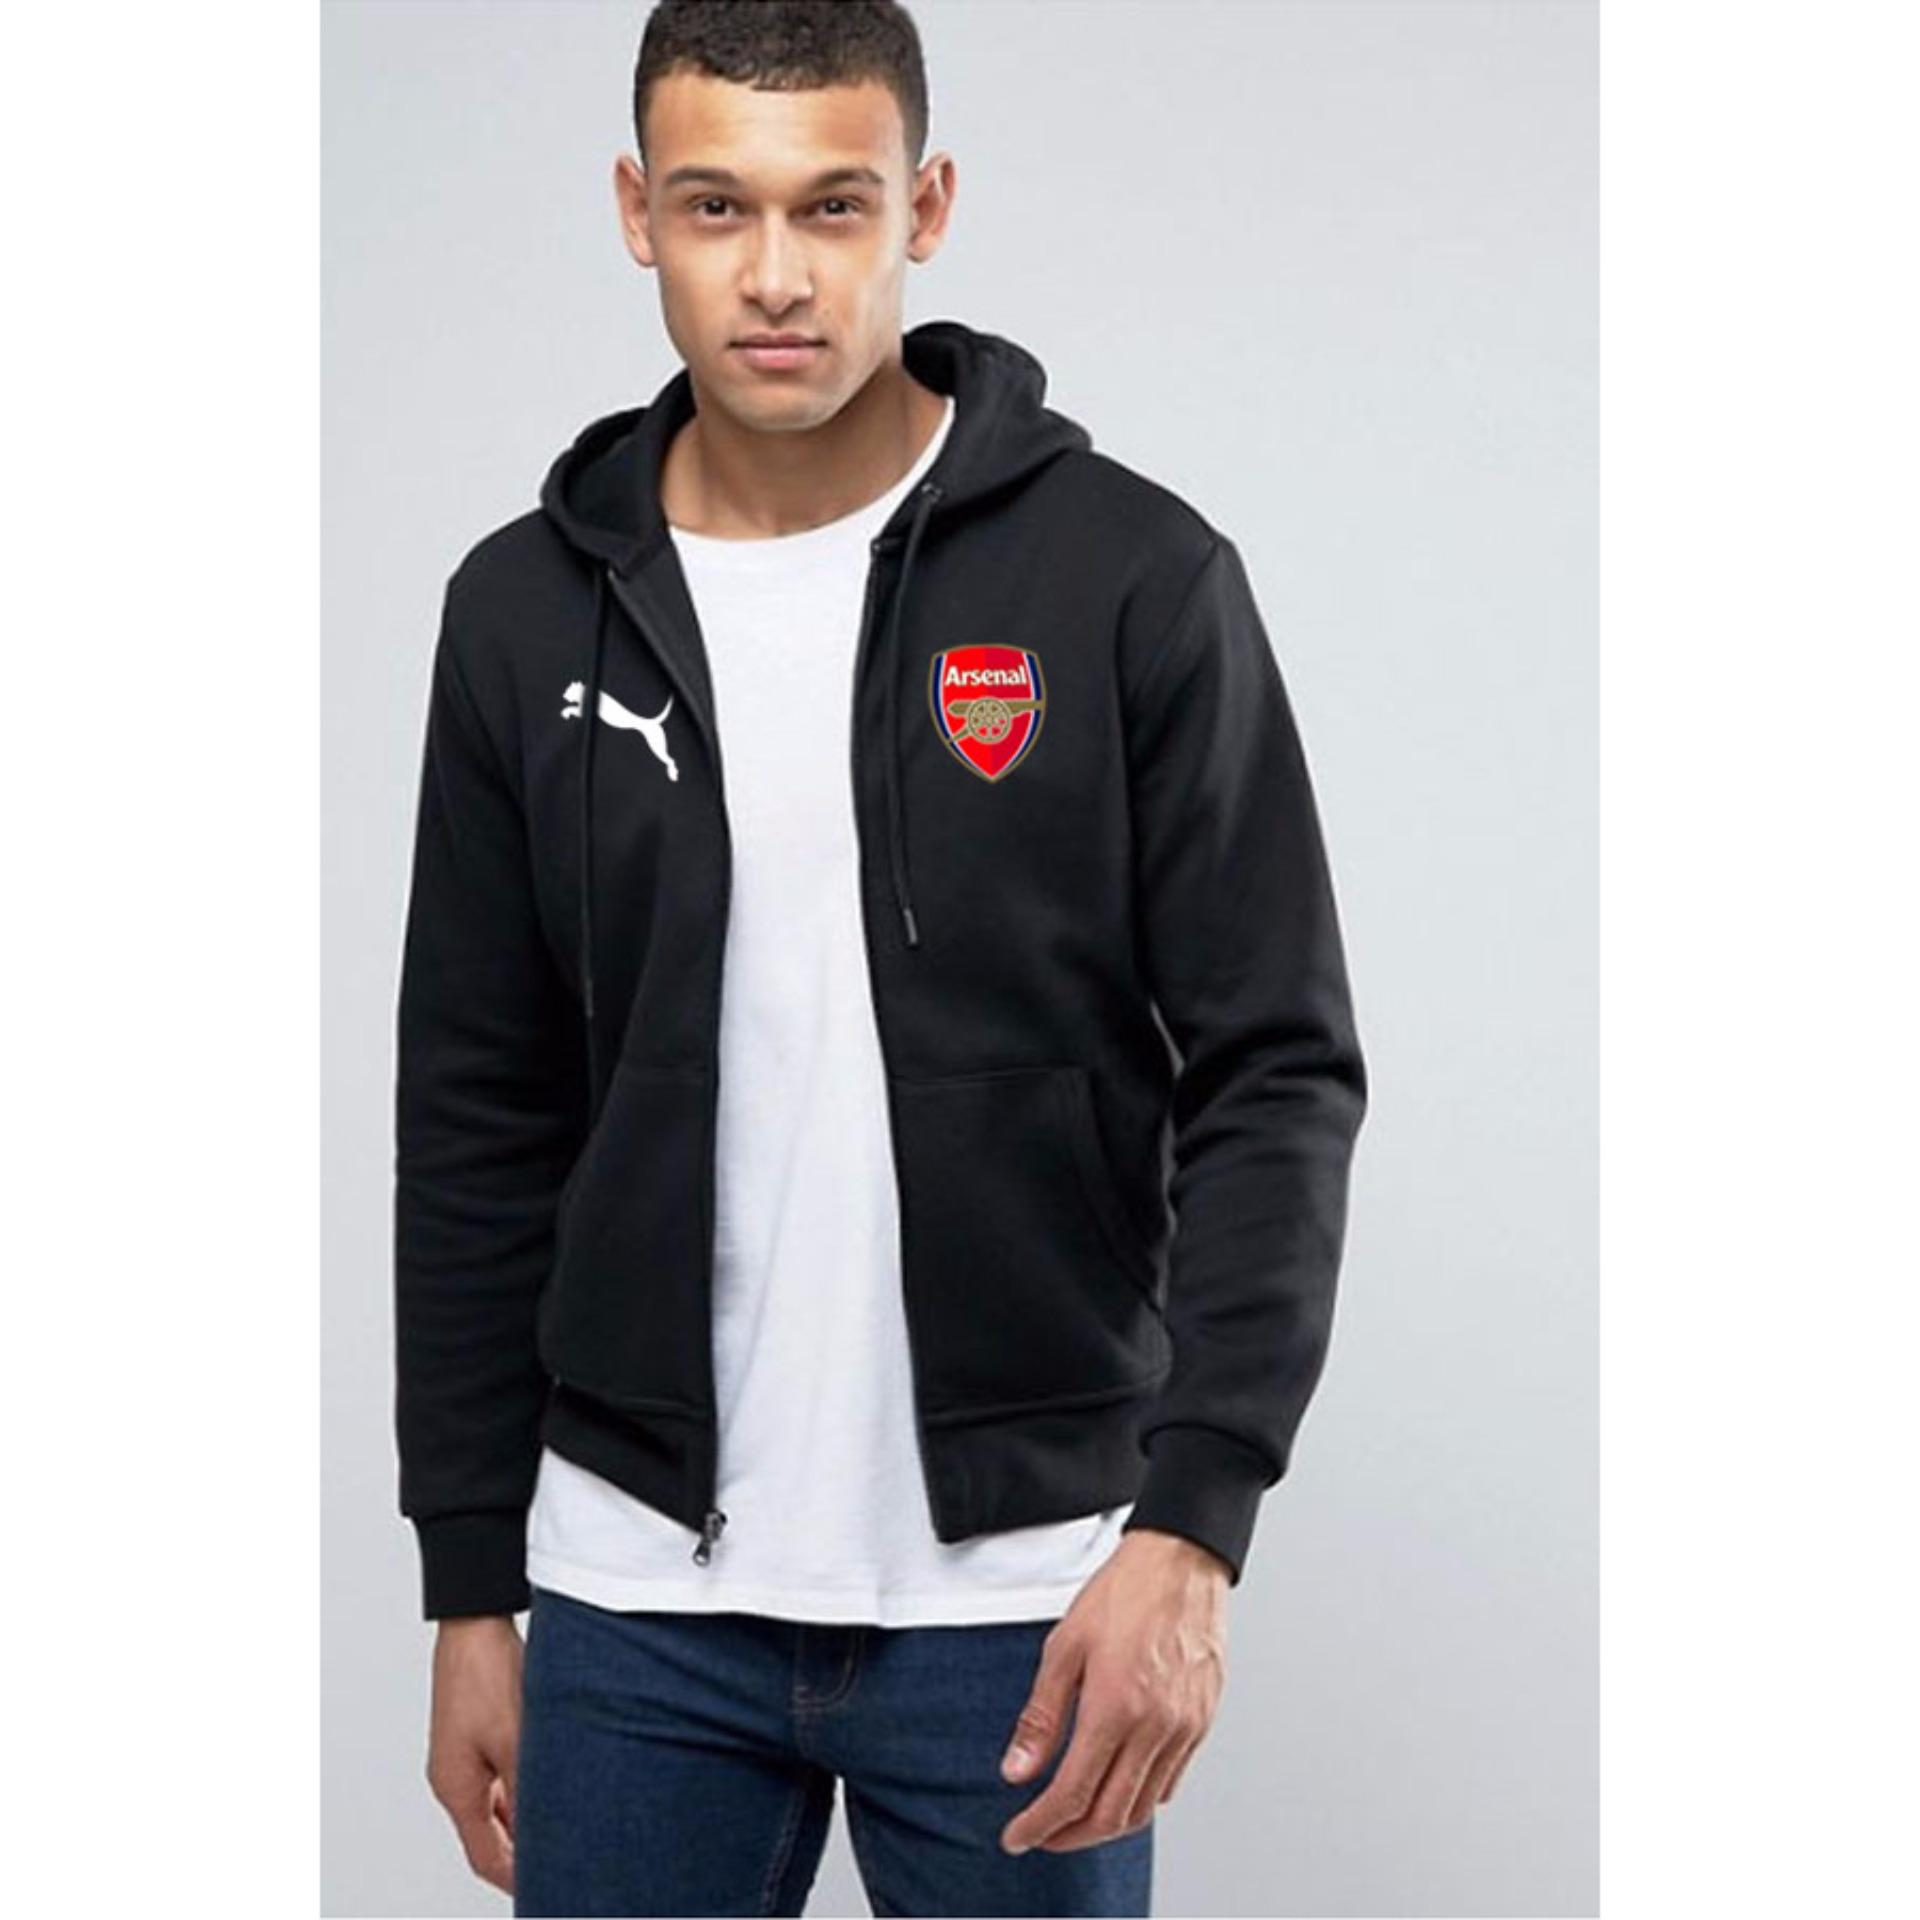 Buy Sell Cheapest Arsenal The Gunners Best Quality Product Deals Kaos Jersey 2 Just Cloth Jaket Zipper Hitam